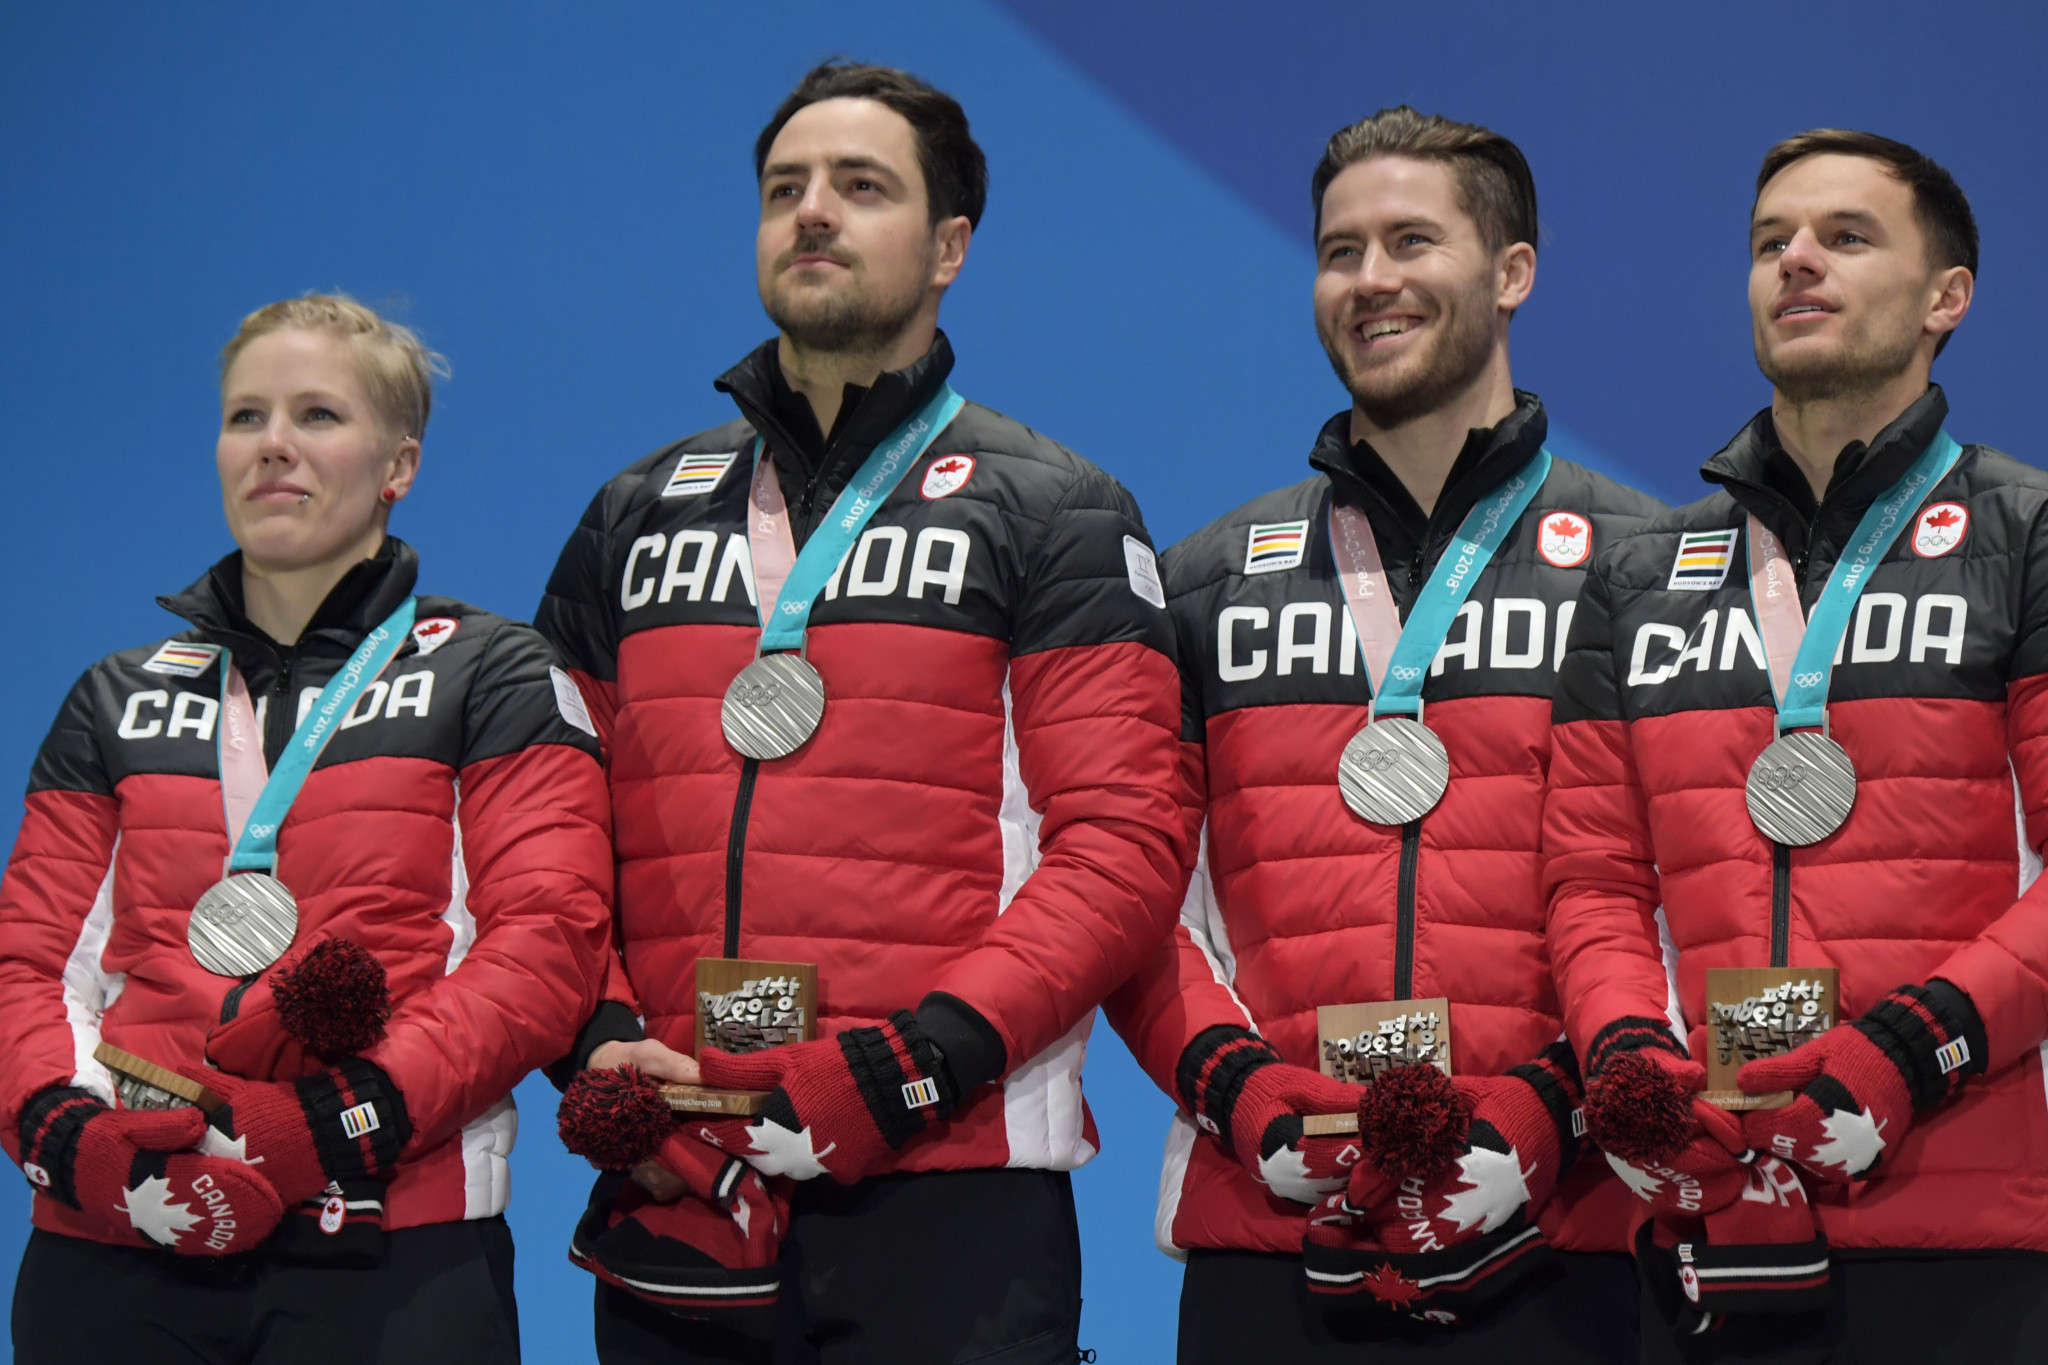 Canada's silver medallists Alex Gough, Sam Edney, Tristan Walker and Justin Snith pose on the podium during the medal ceremony at Pyeongchang 2018 ©Getty Images